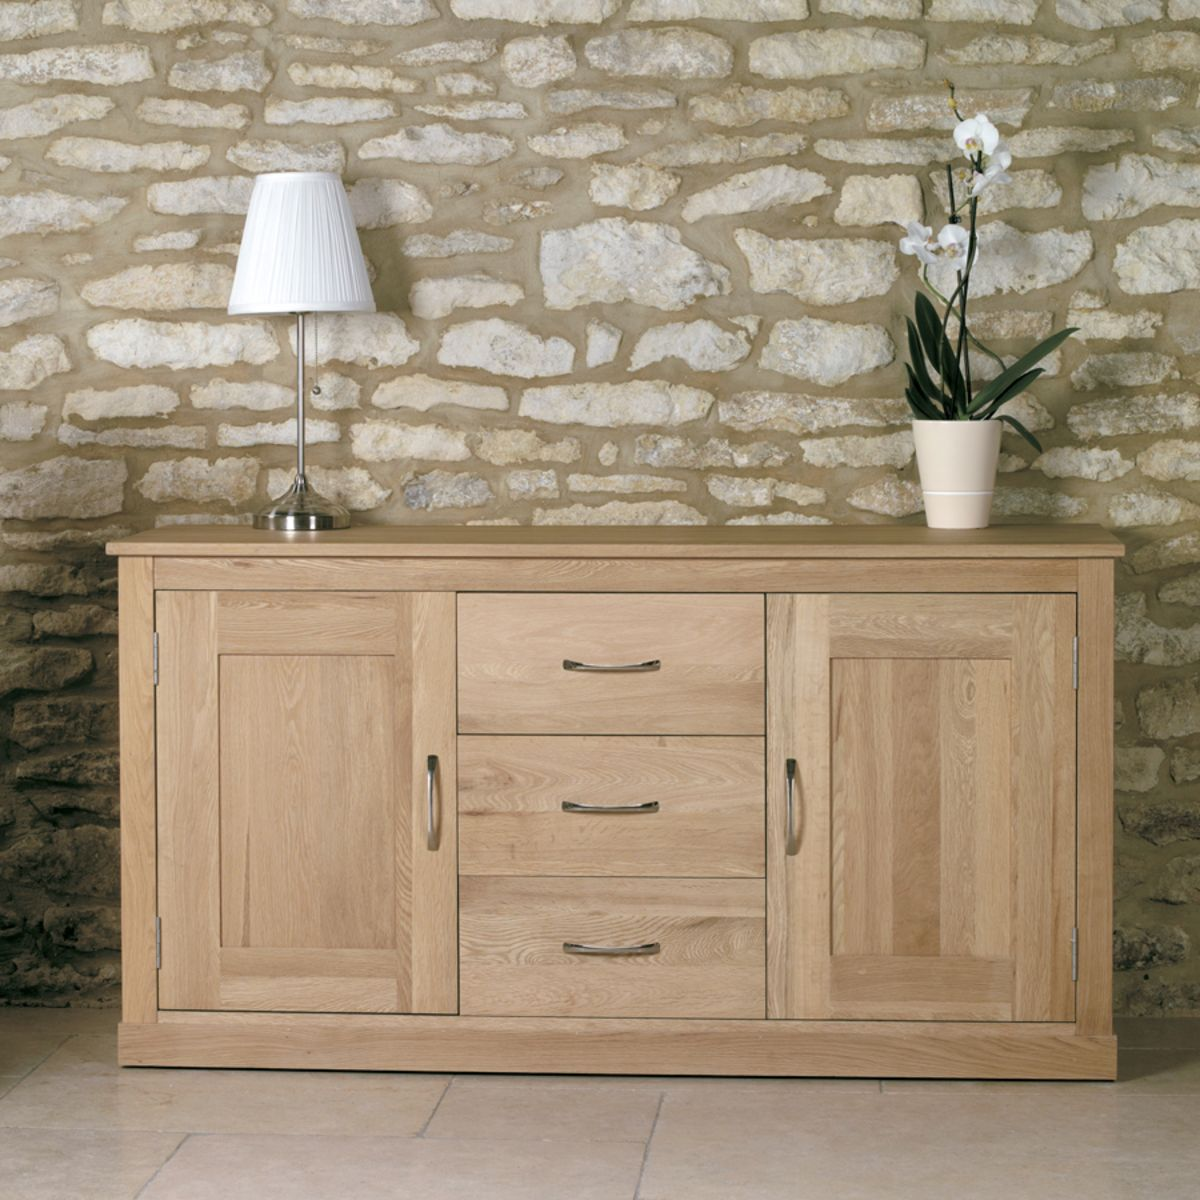 Mobel oak large sideboard wooden furniture store for Mobel